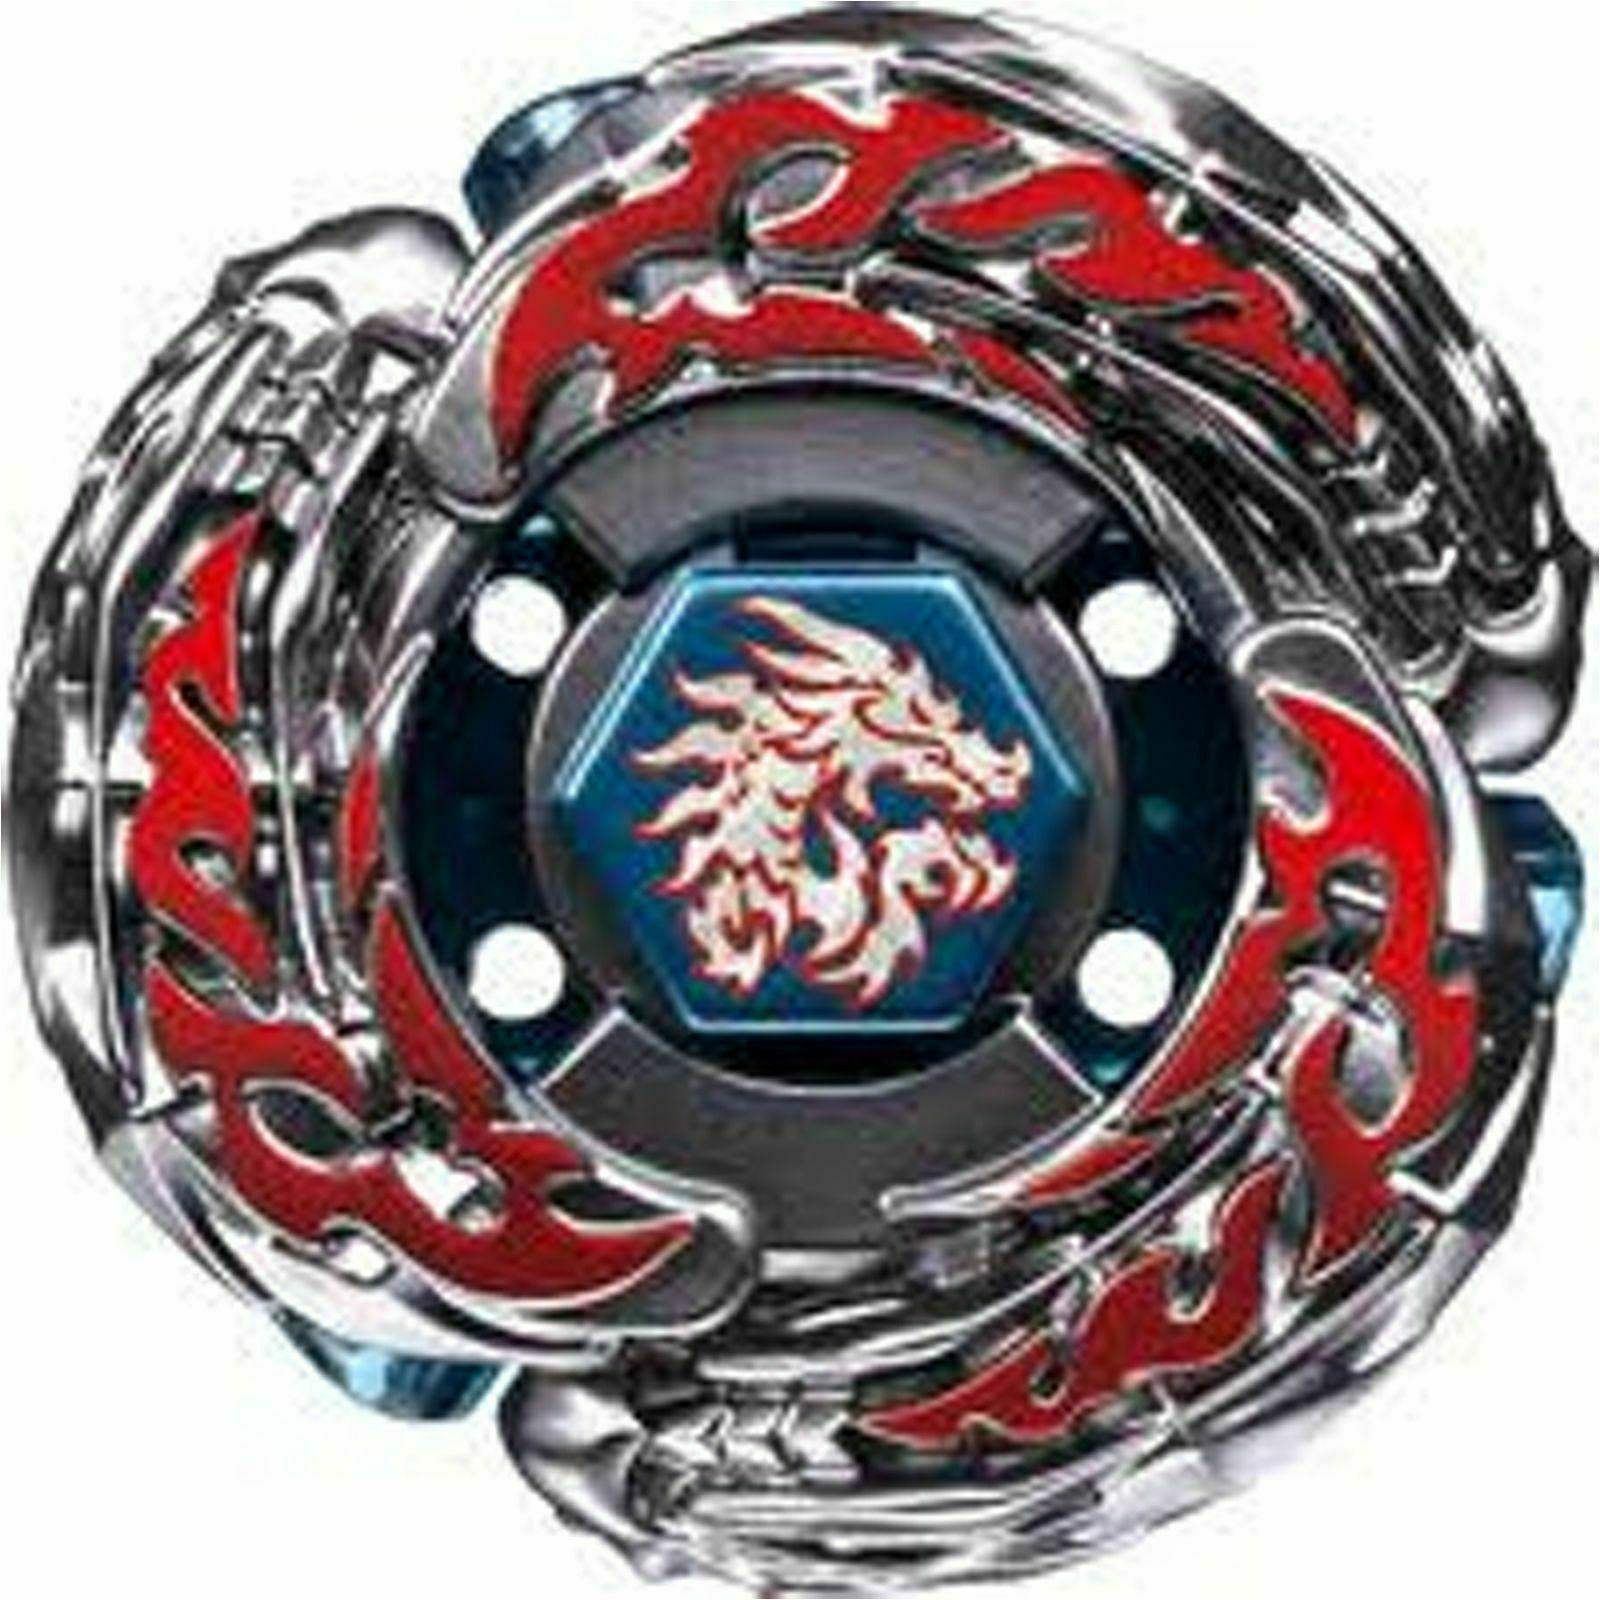 L-Drago Destroy F:S Beyblade 4d STARTER WITH LAUNCHER